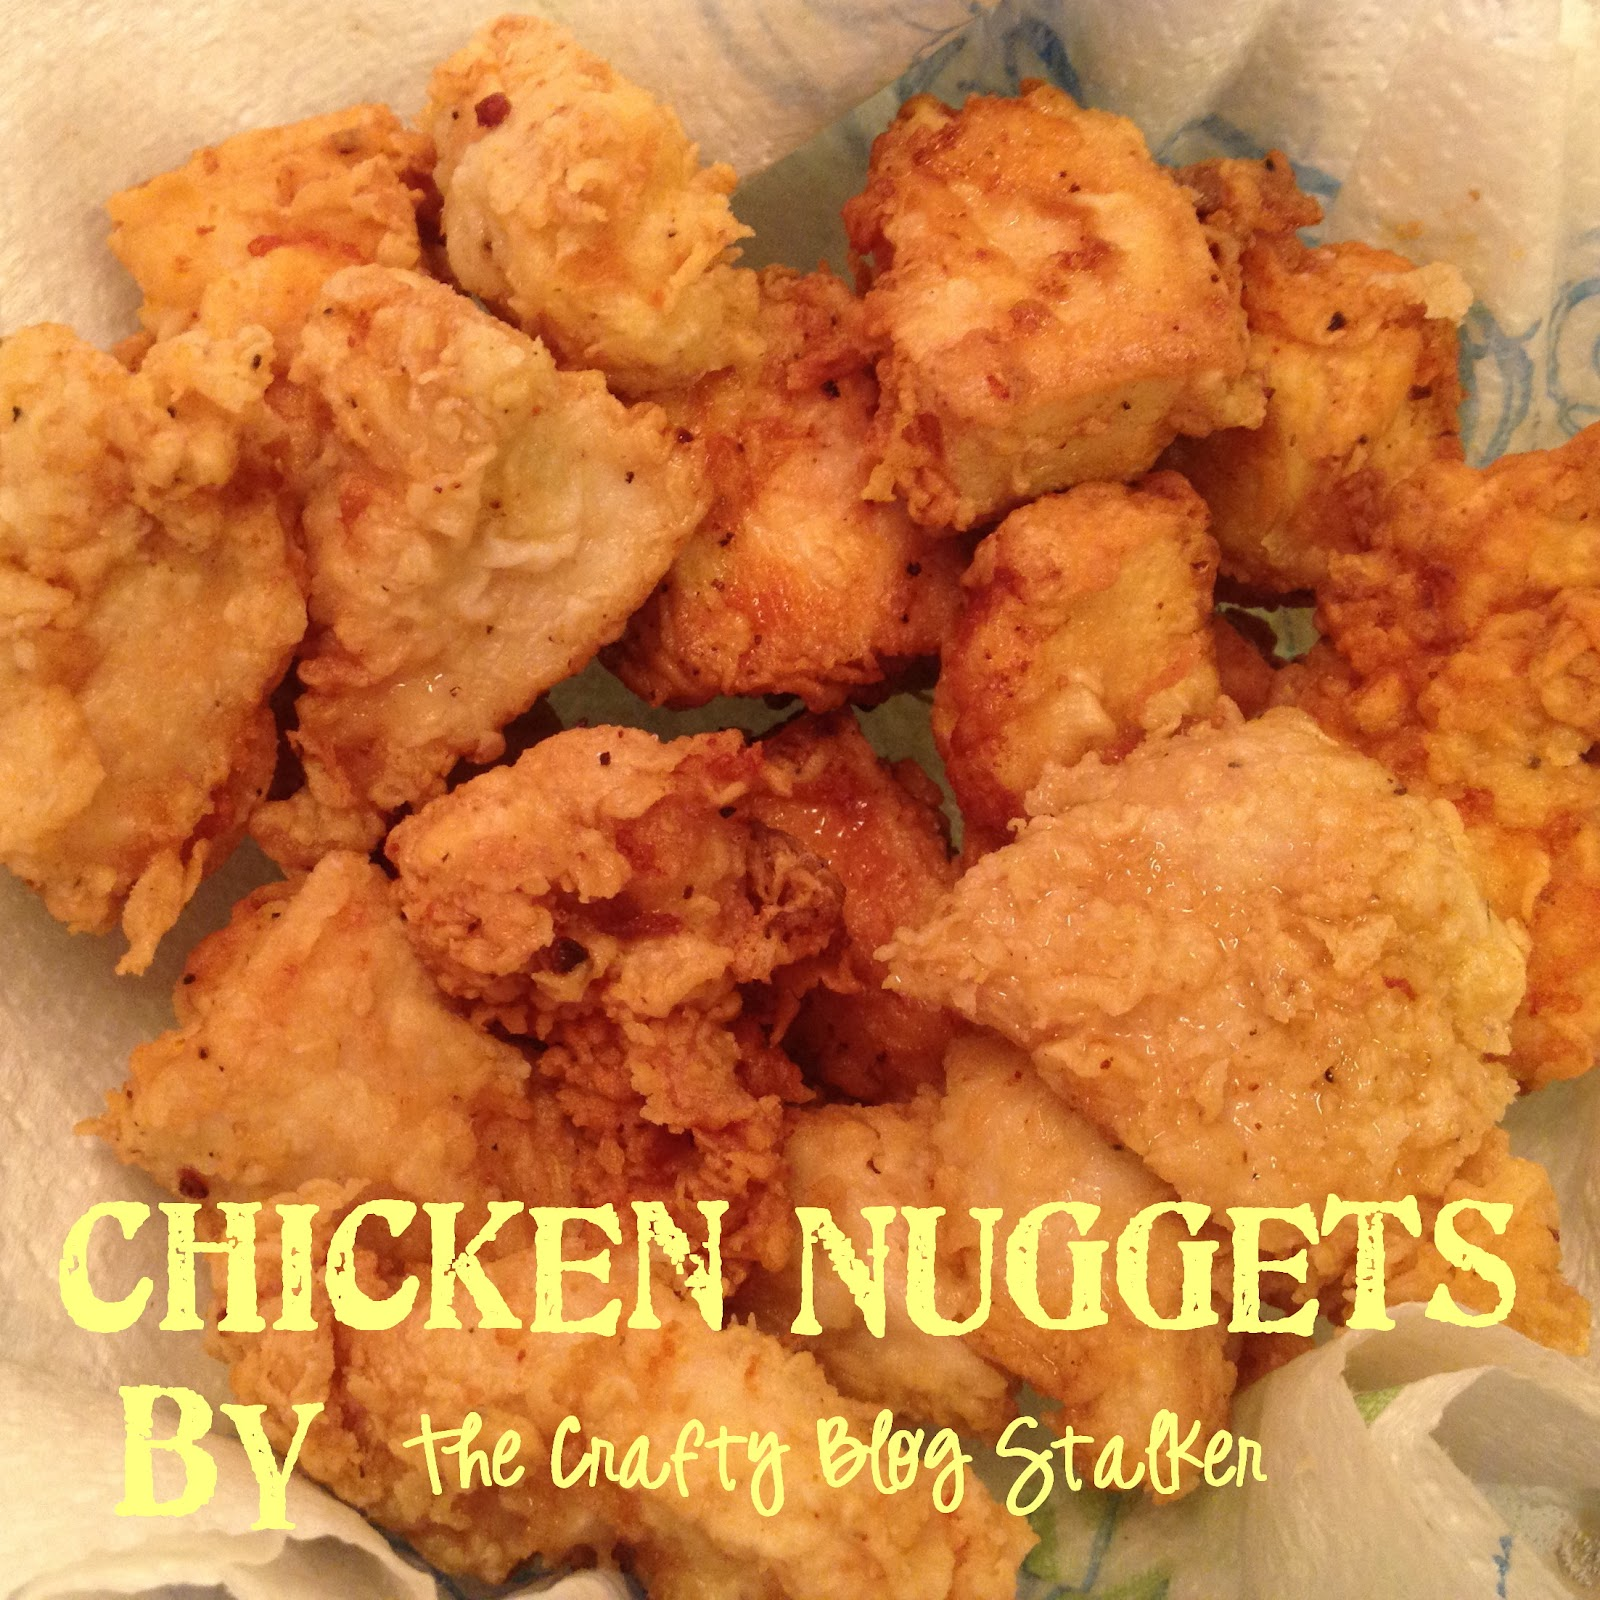 ... showed the yummy, creamy ranch with my homemade Chicken Nuggets